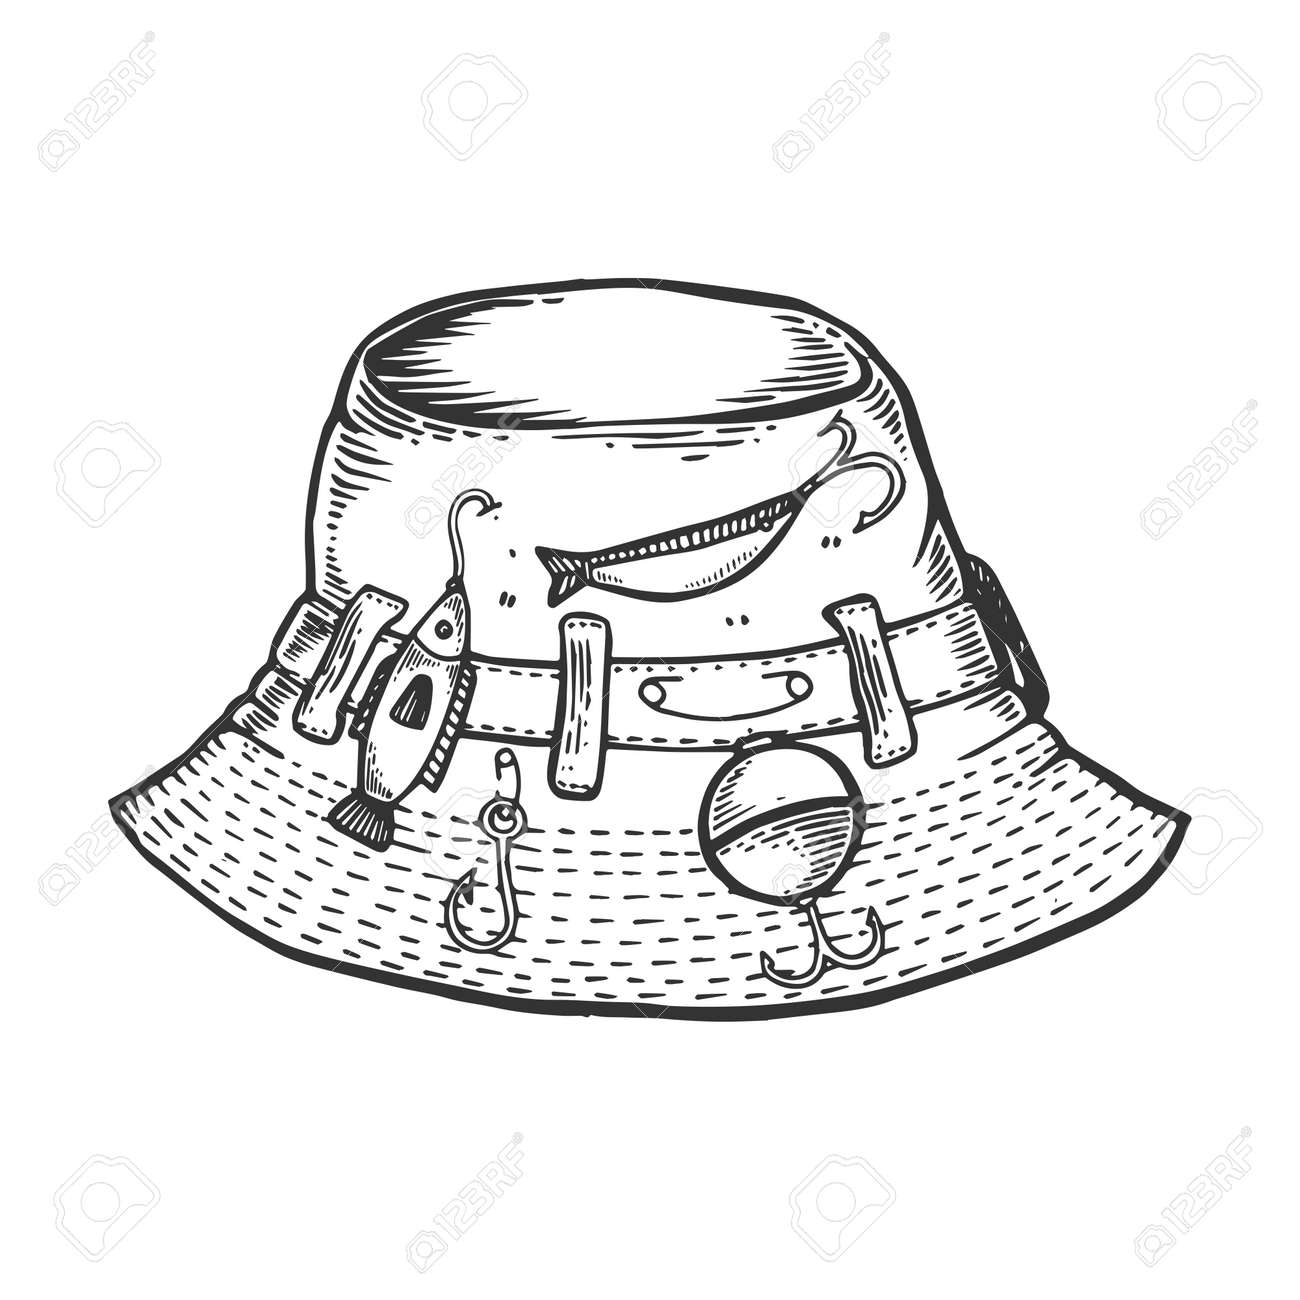 42cf92ee4bb Fisherman hat engraving vector illustration. Scratch board style imitation.  Black and white hand drawn